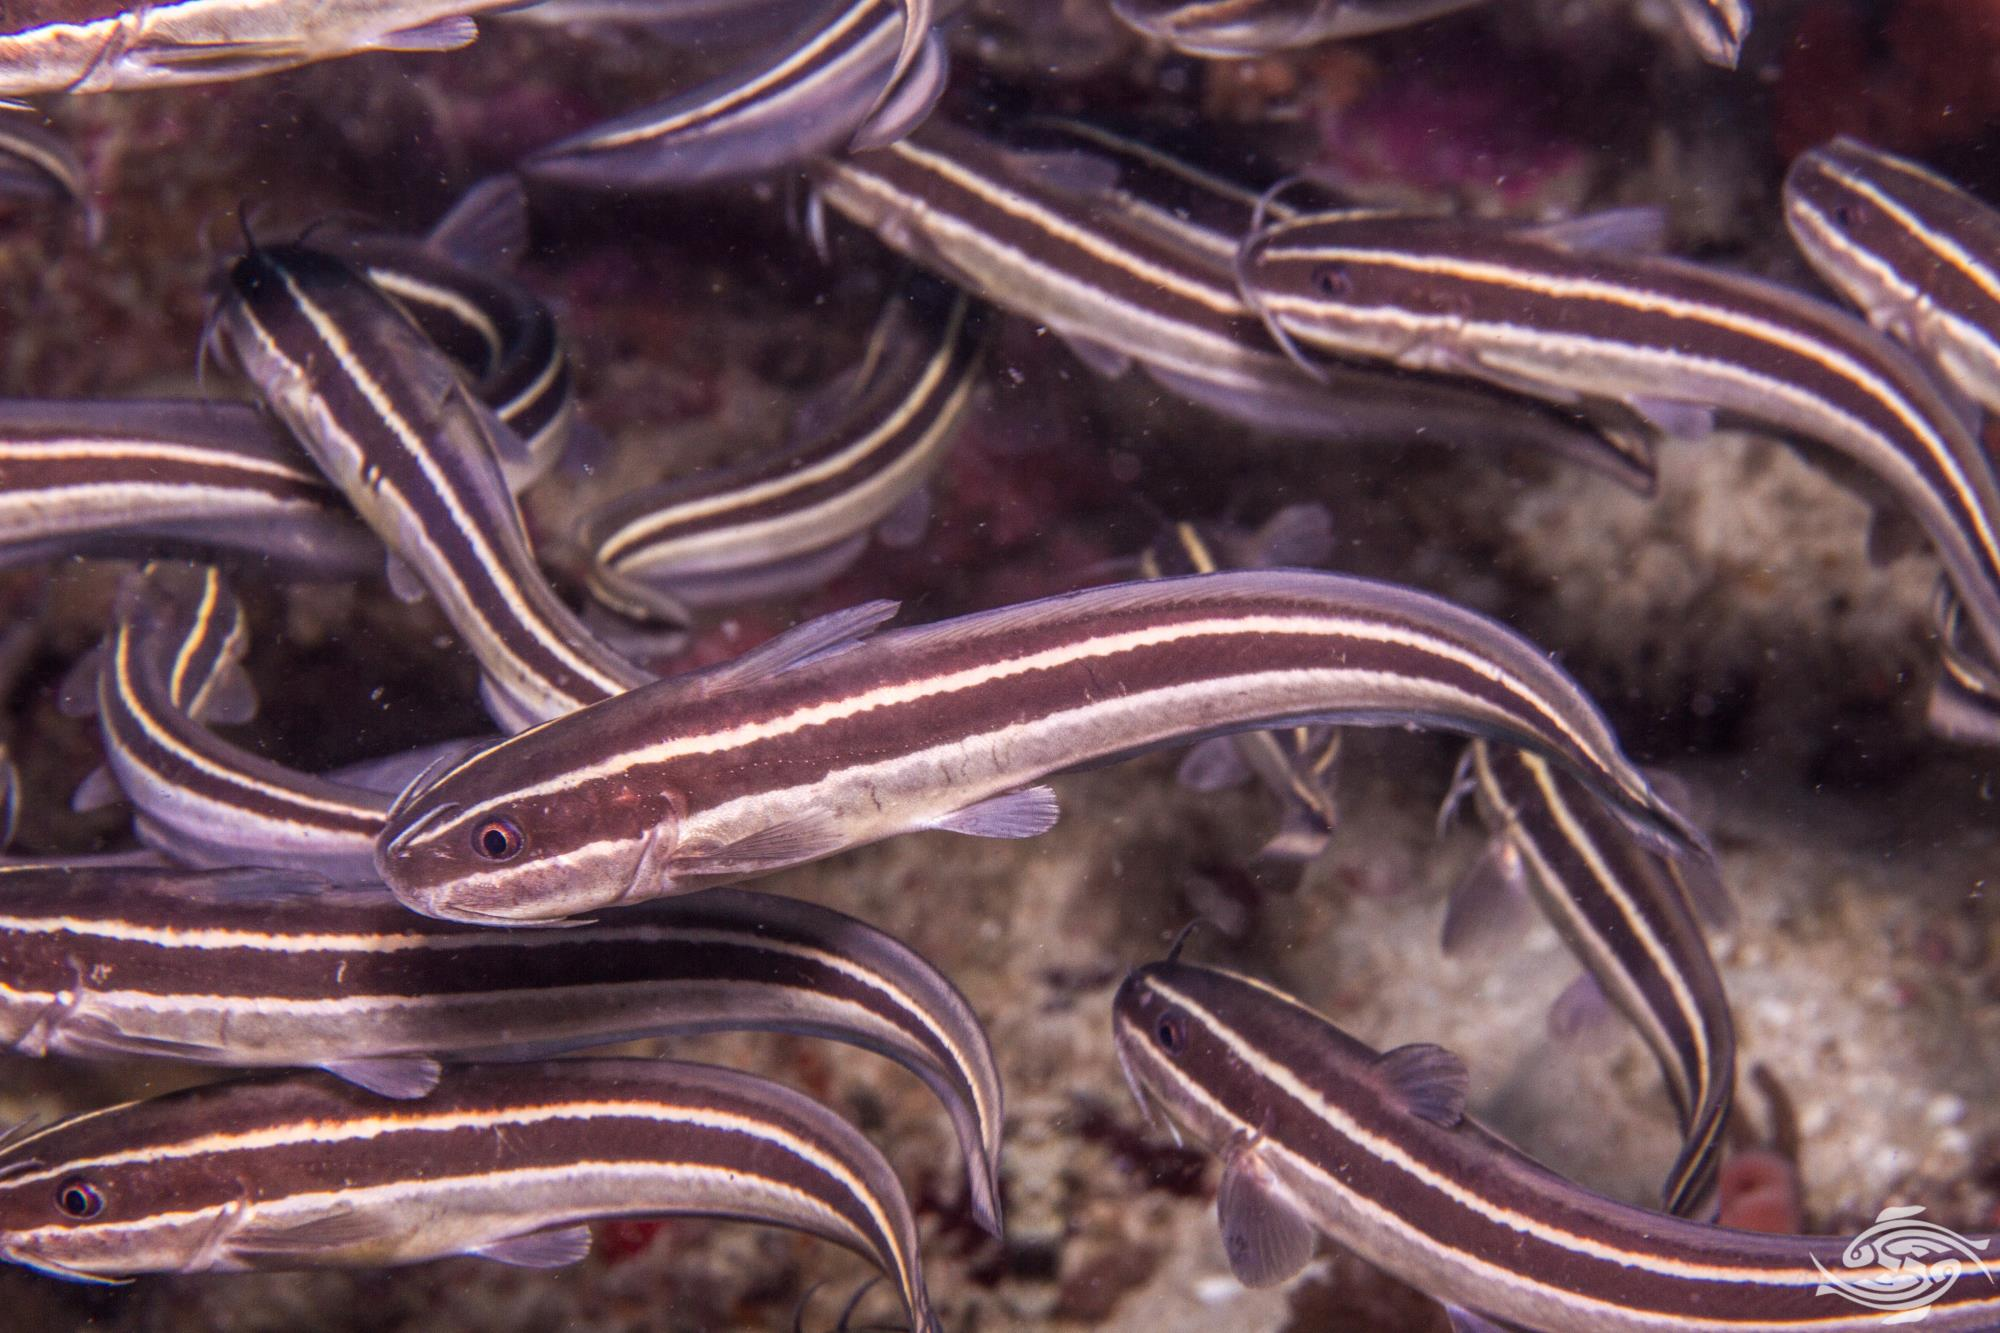 Striped eel catfish (Plotosus lineatus) also known as the oriental catfish